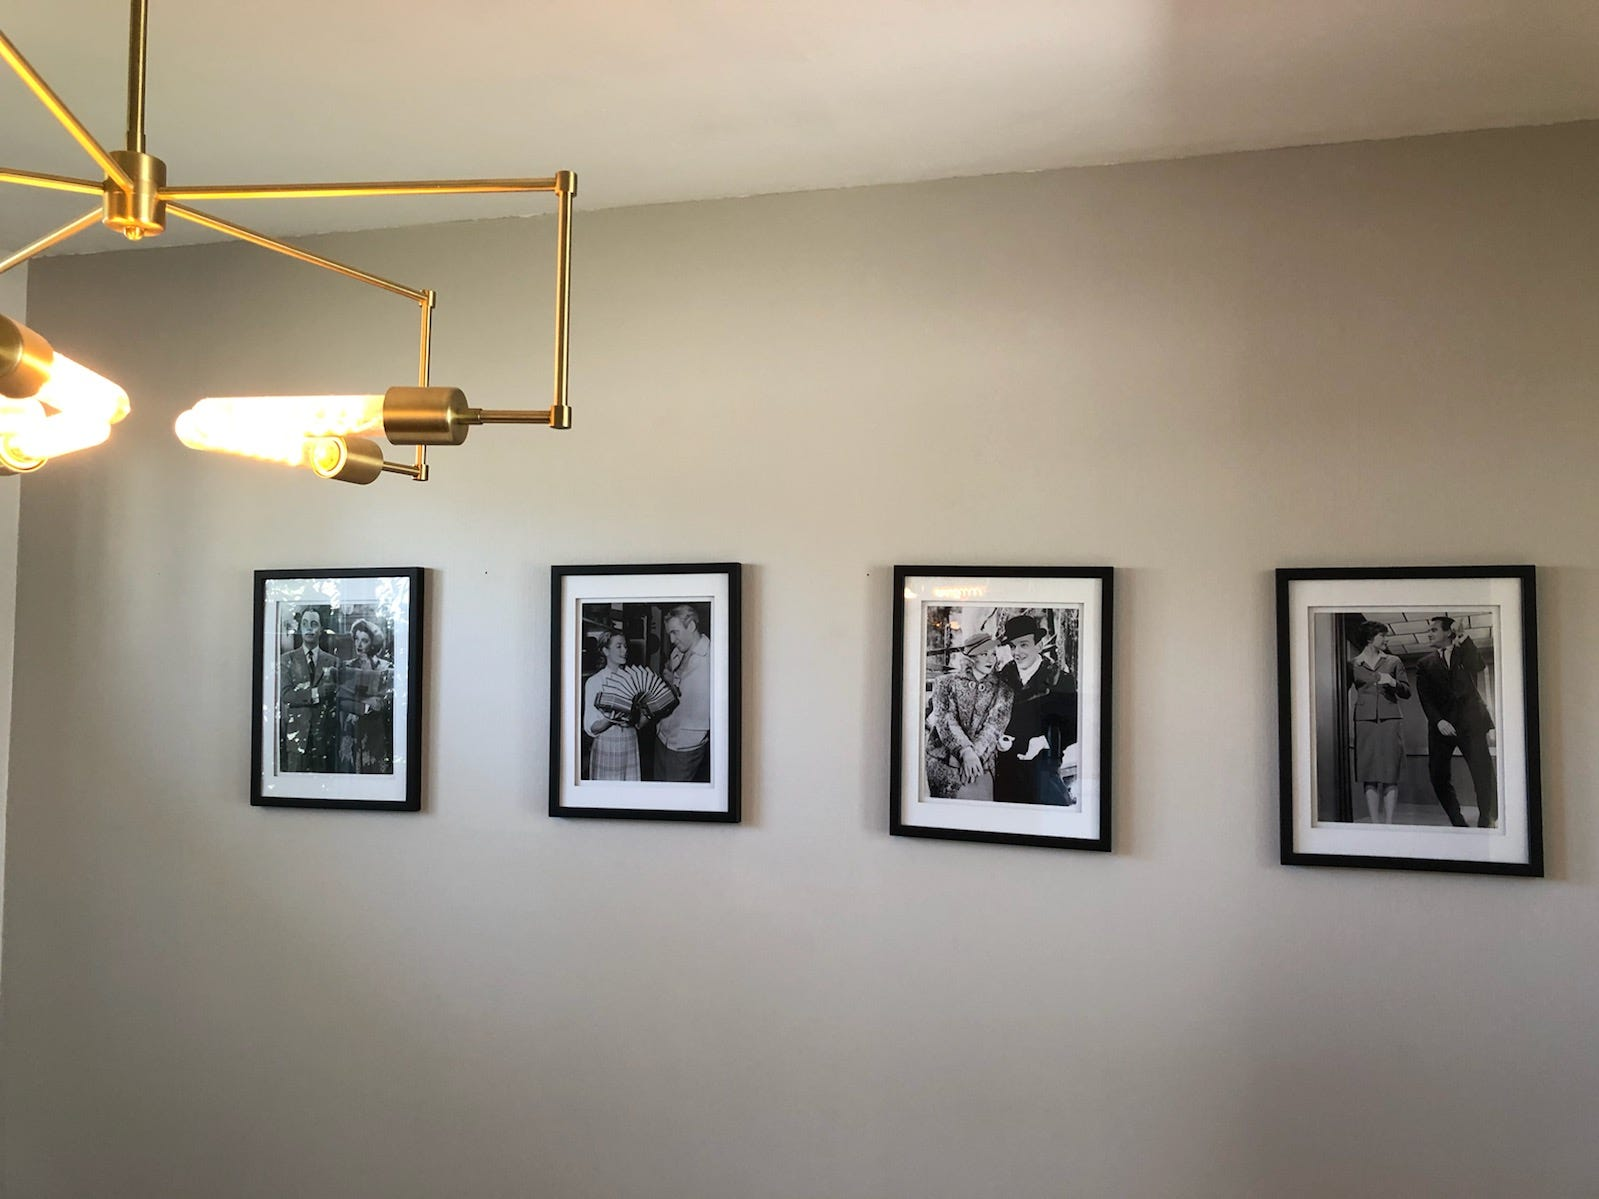 Famous scenes from old movies line a dining-room wall at Alex and Jonathan Chapman's Cherry Hill home.